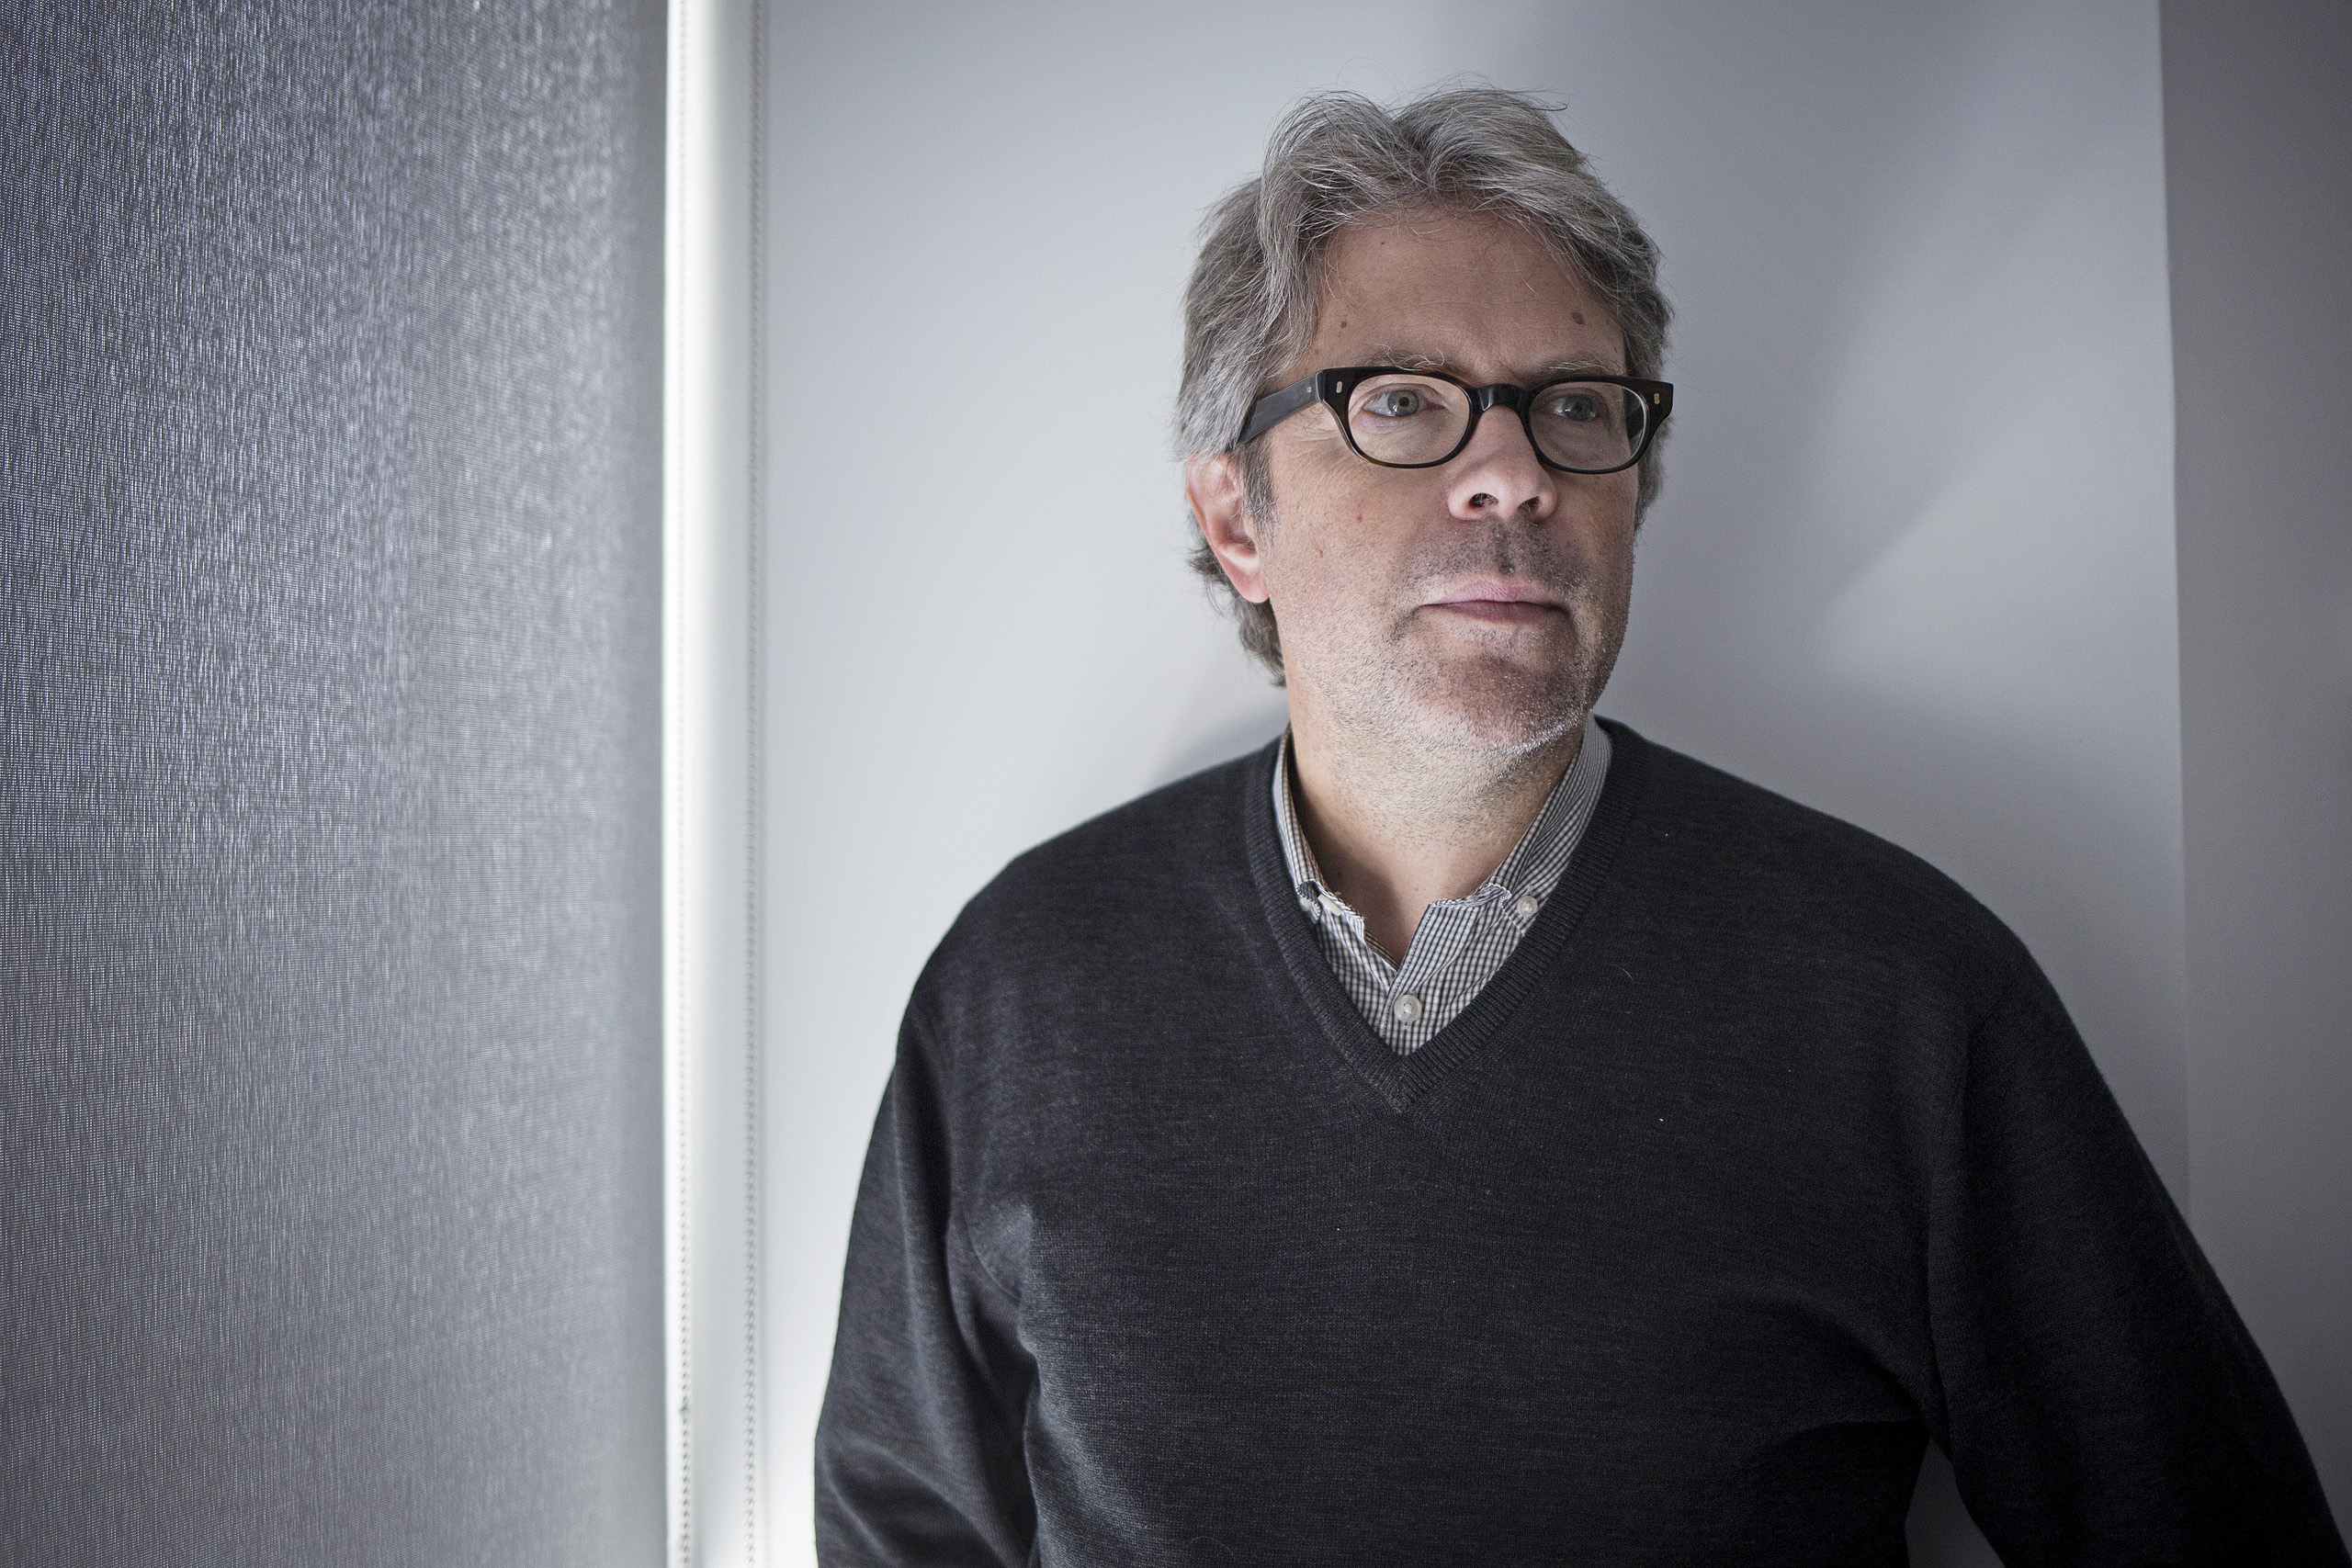 American novelist, Jonathan Franzen, discusses his latest book, Purity in Toronto on Oct. 11, 2015.